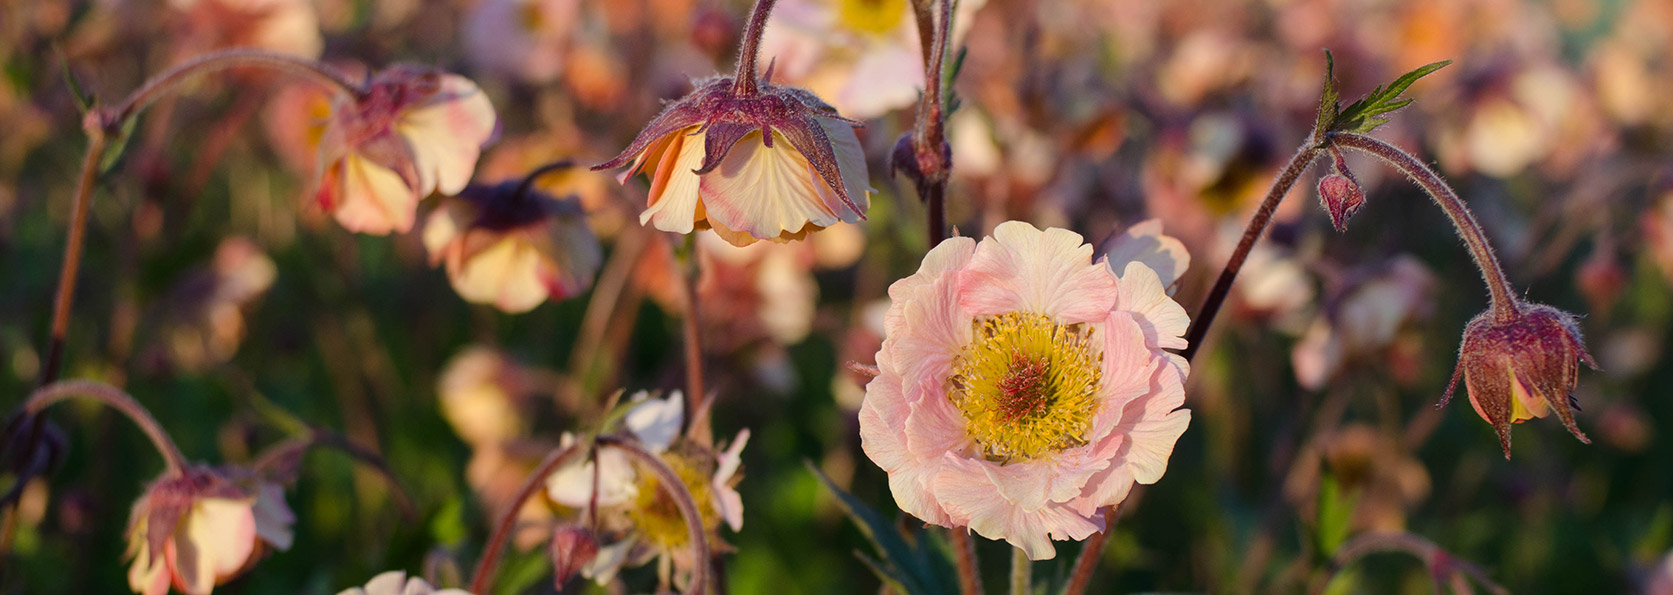 Try an easygoing perennial with all the frills rohslers allendale perennial of the week geumavens mightylinksfo